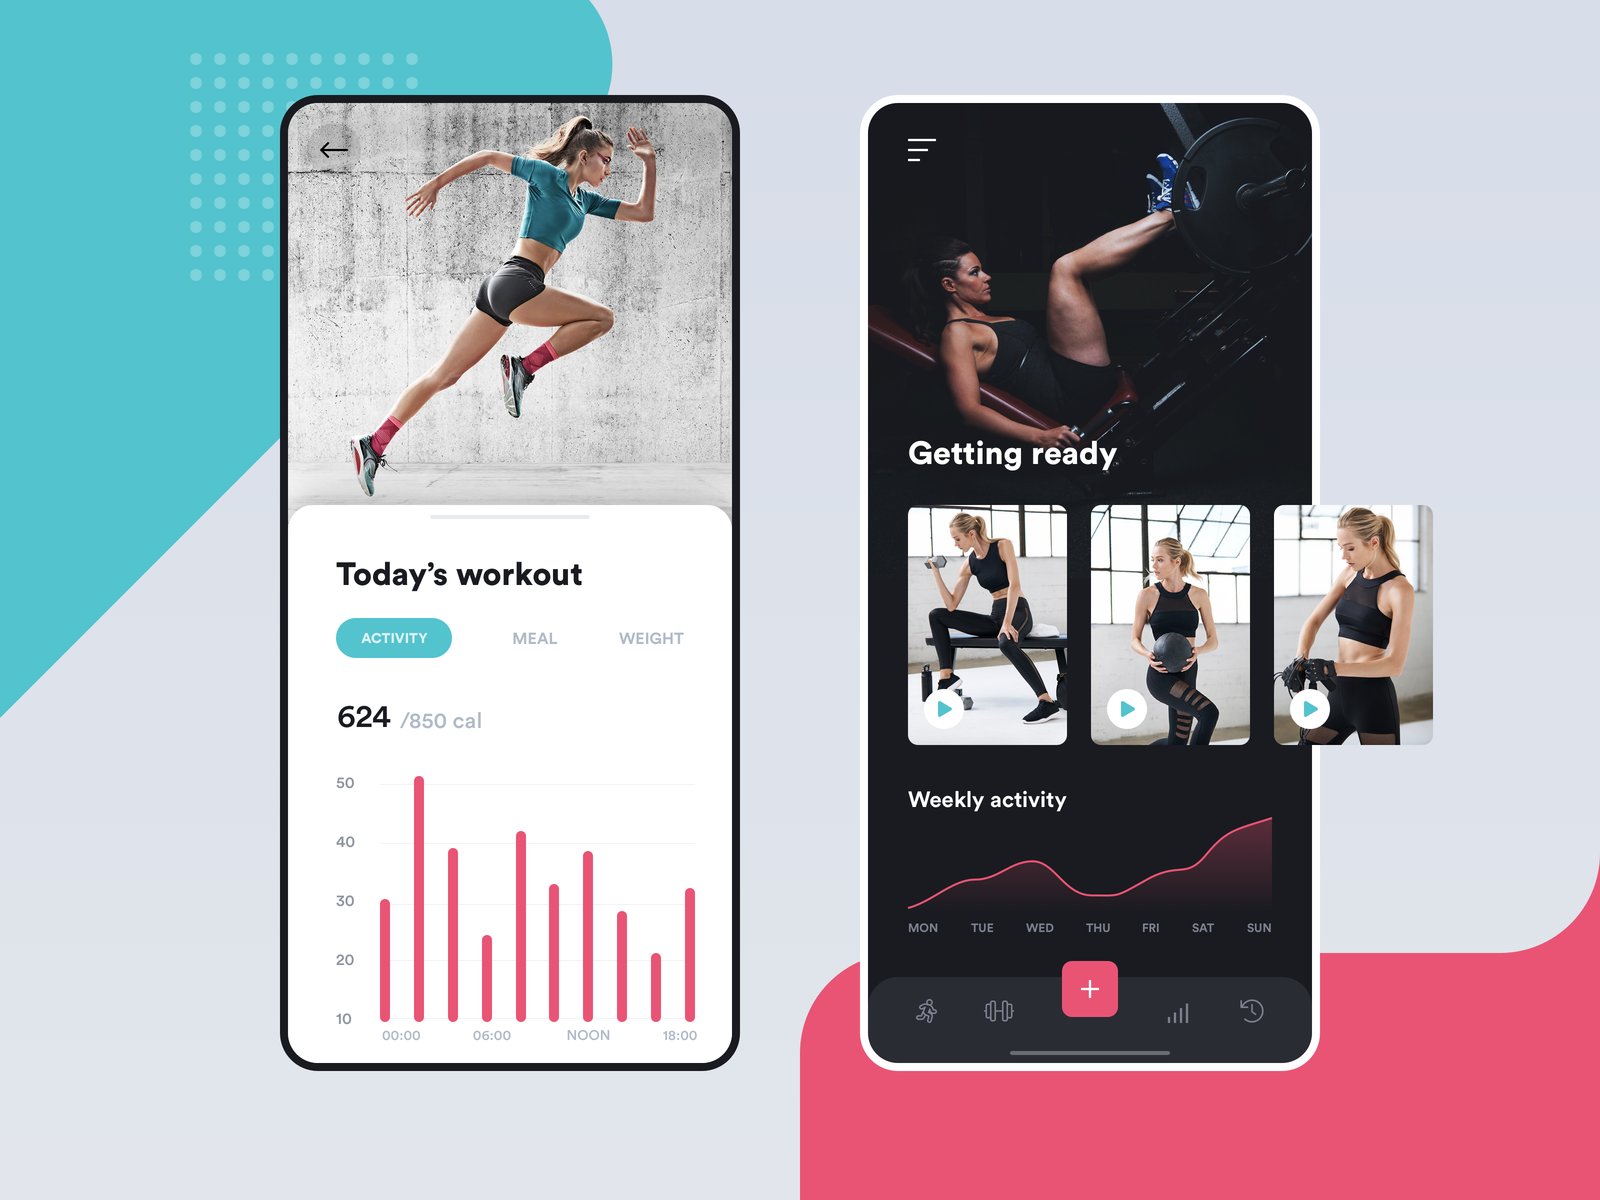 8 Fitness Apps to Download to Workout at Home